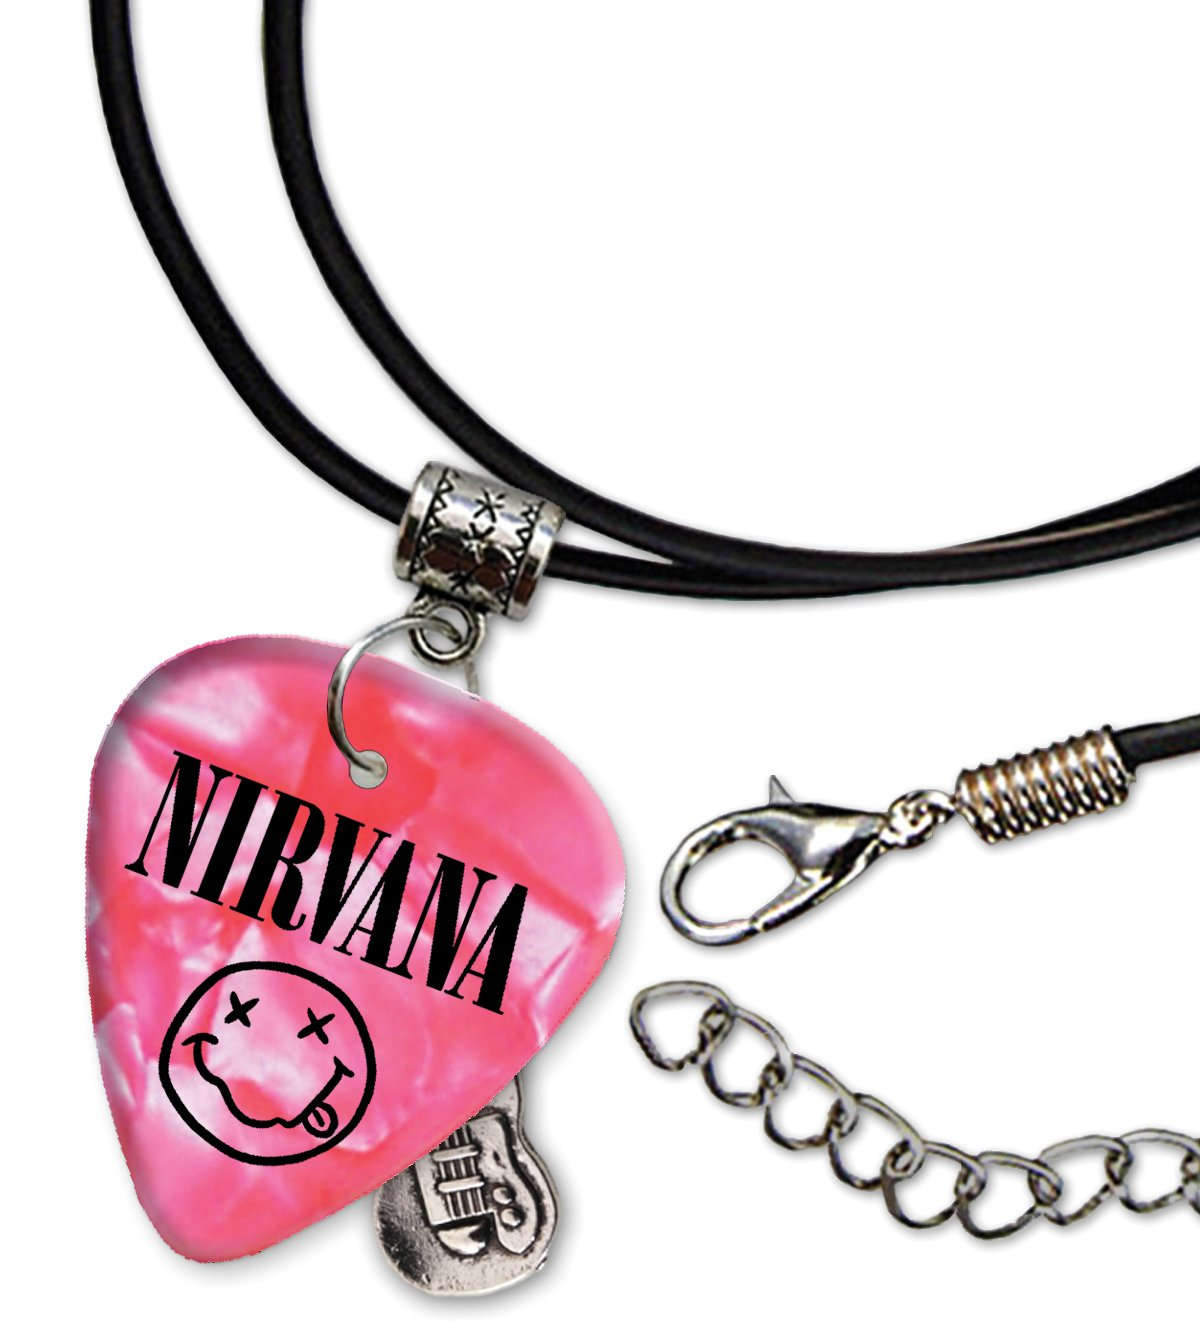 Nirvana Band Logo Pink Collana di corda di chitarra plettro (H) We Love Guitars